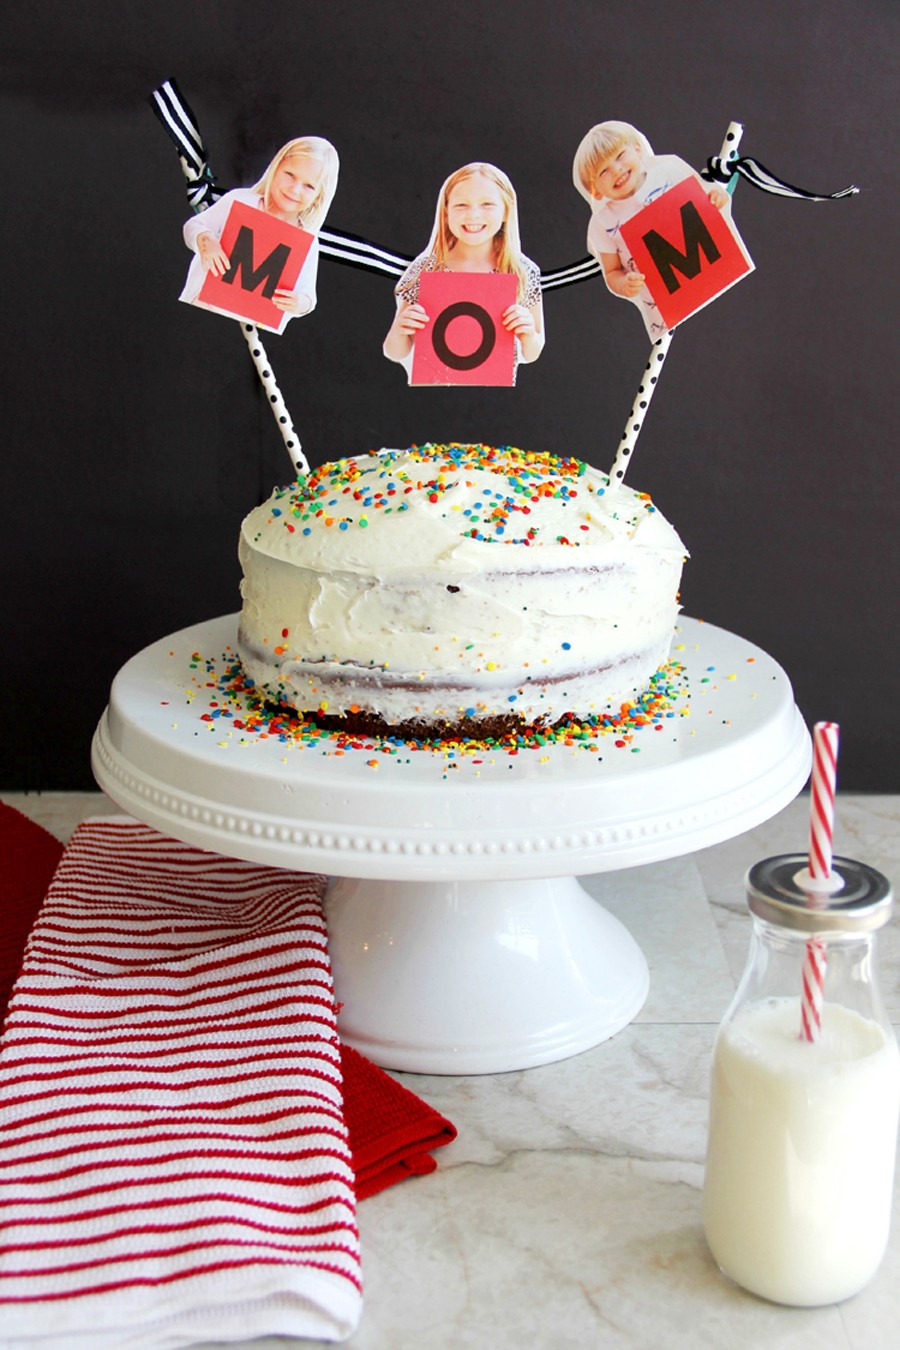 Make Mom or Dad feel special on their day with a personalized cake bunting! Celebrate Mother's Day or Father's Day with kid cake toppers.